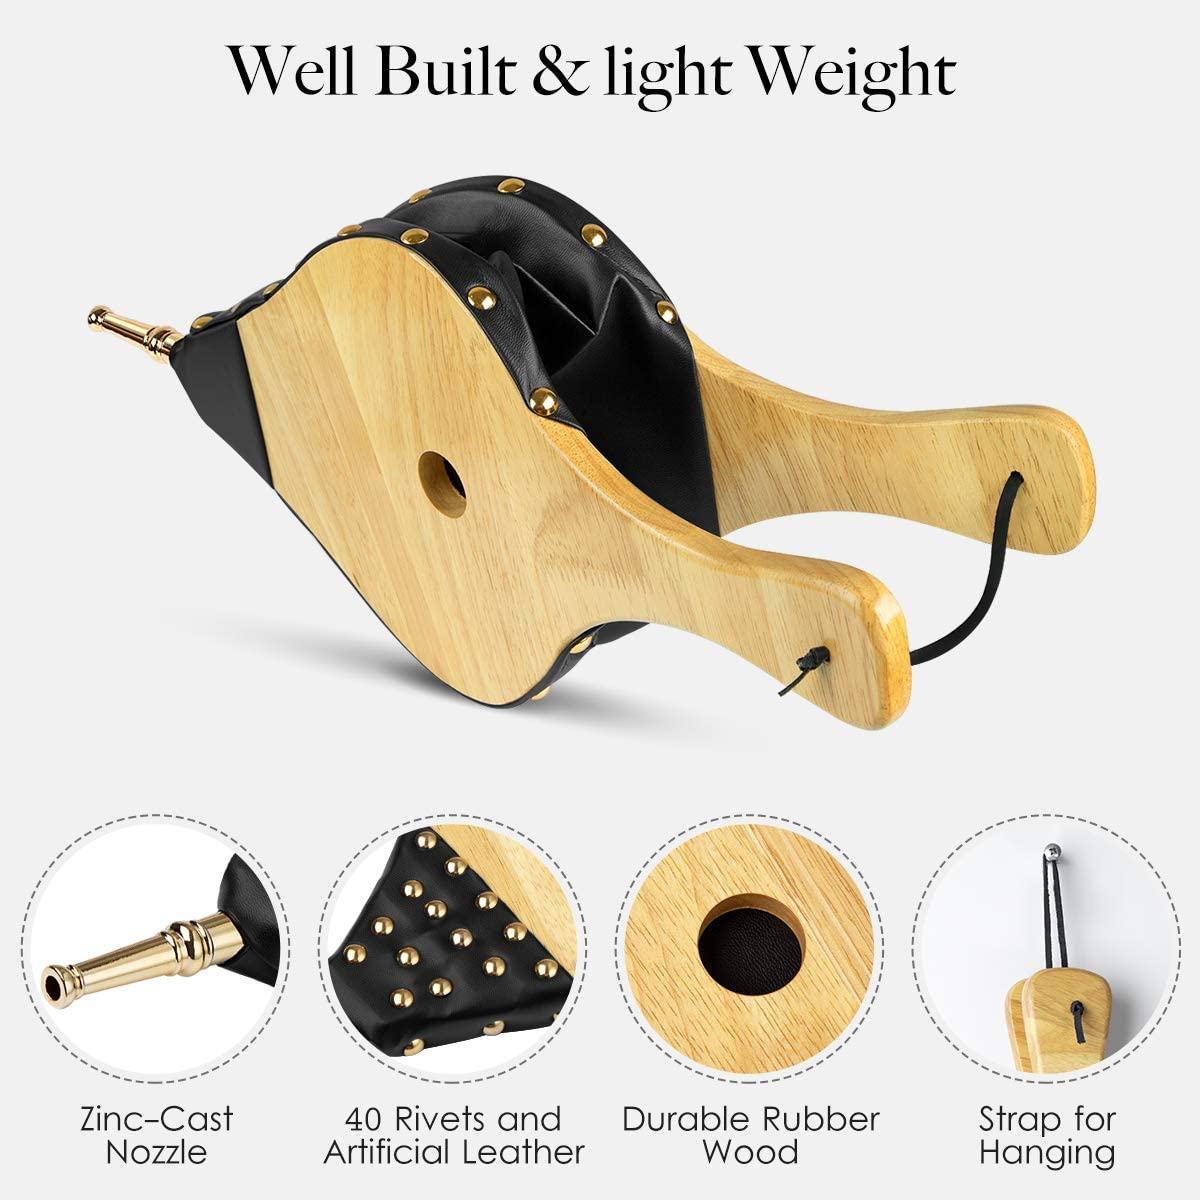 CADARA Fireplace Bellows Solid Wood Air Bellow 17 x 7.5 inch with Hanging Strap for Fire Pit Camp BBQ Fire Place Wood Stove Accessories Black